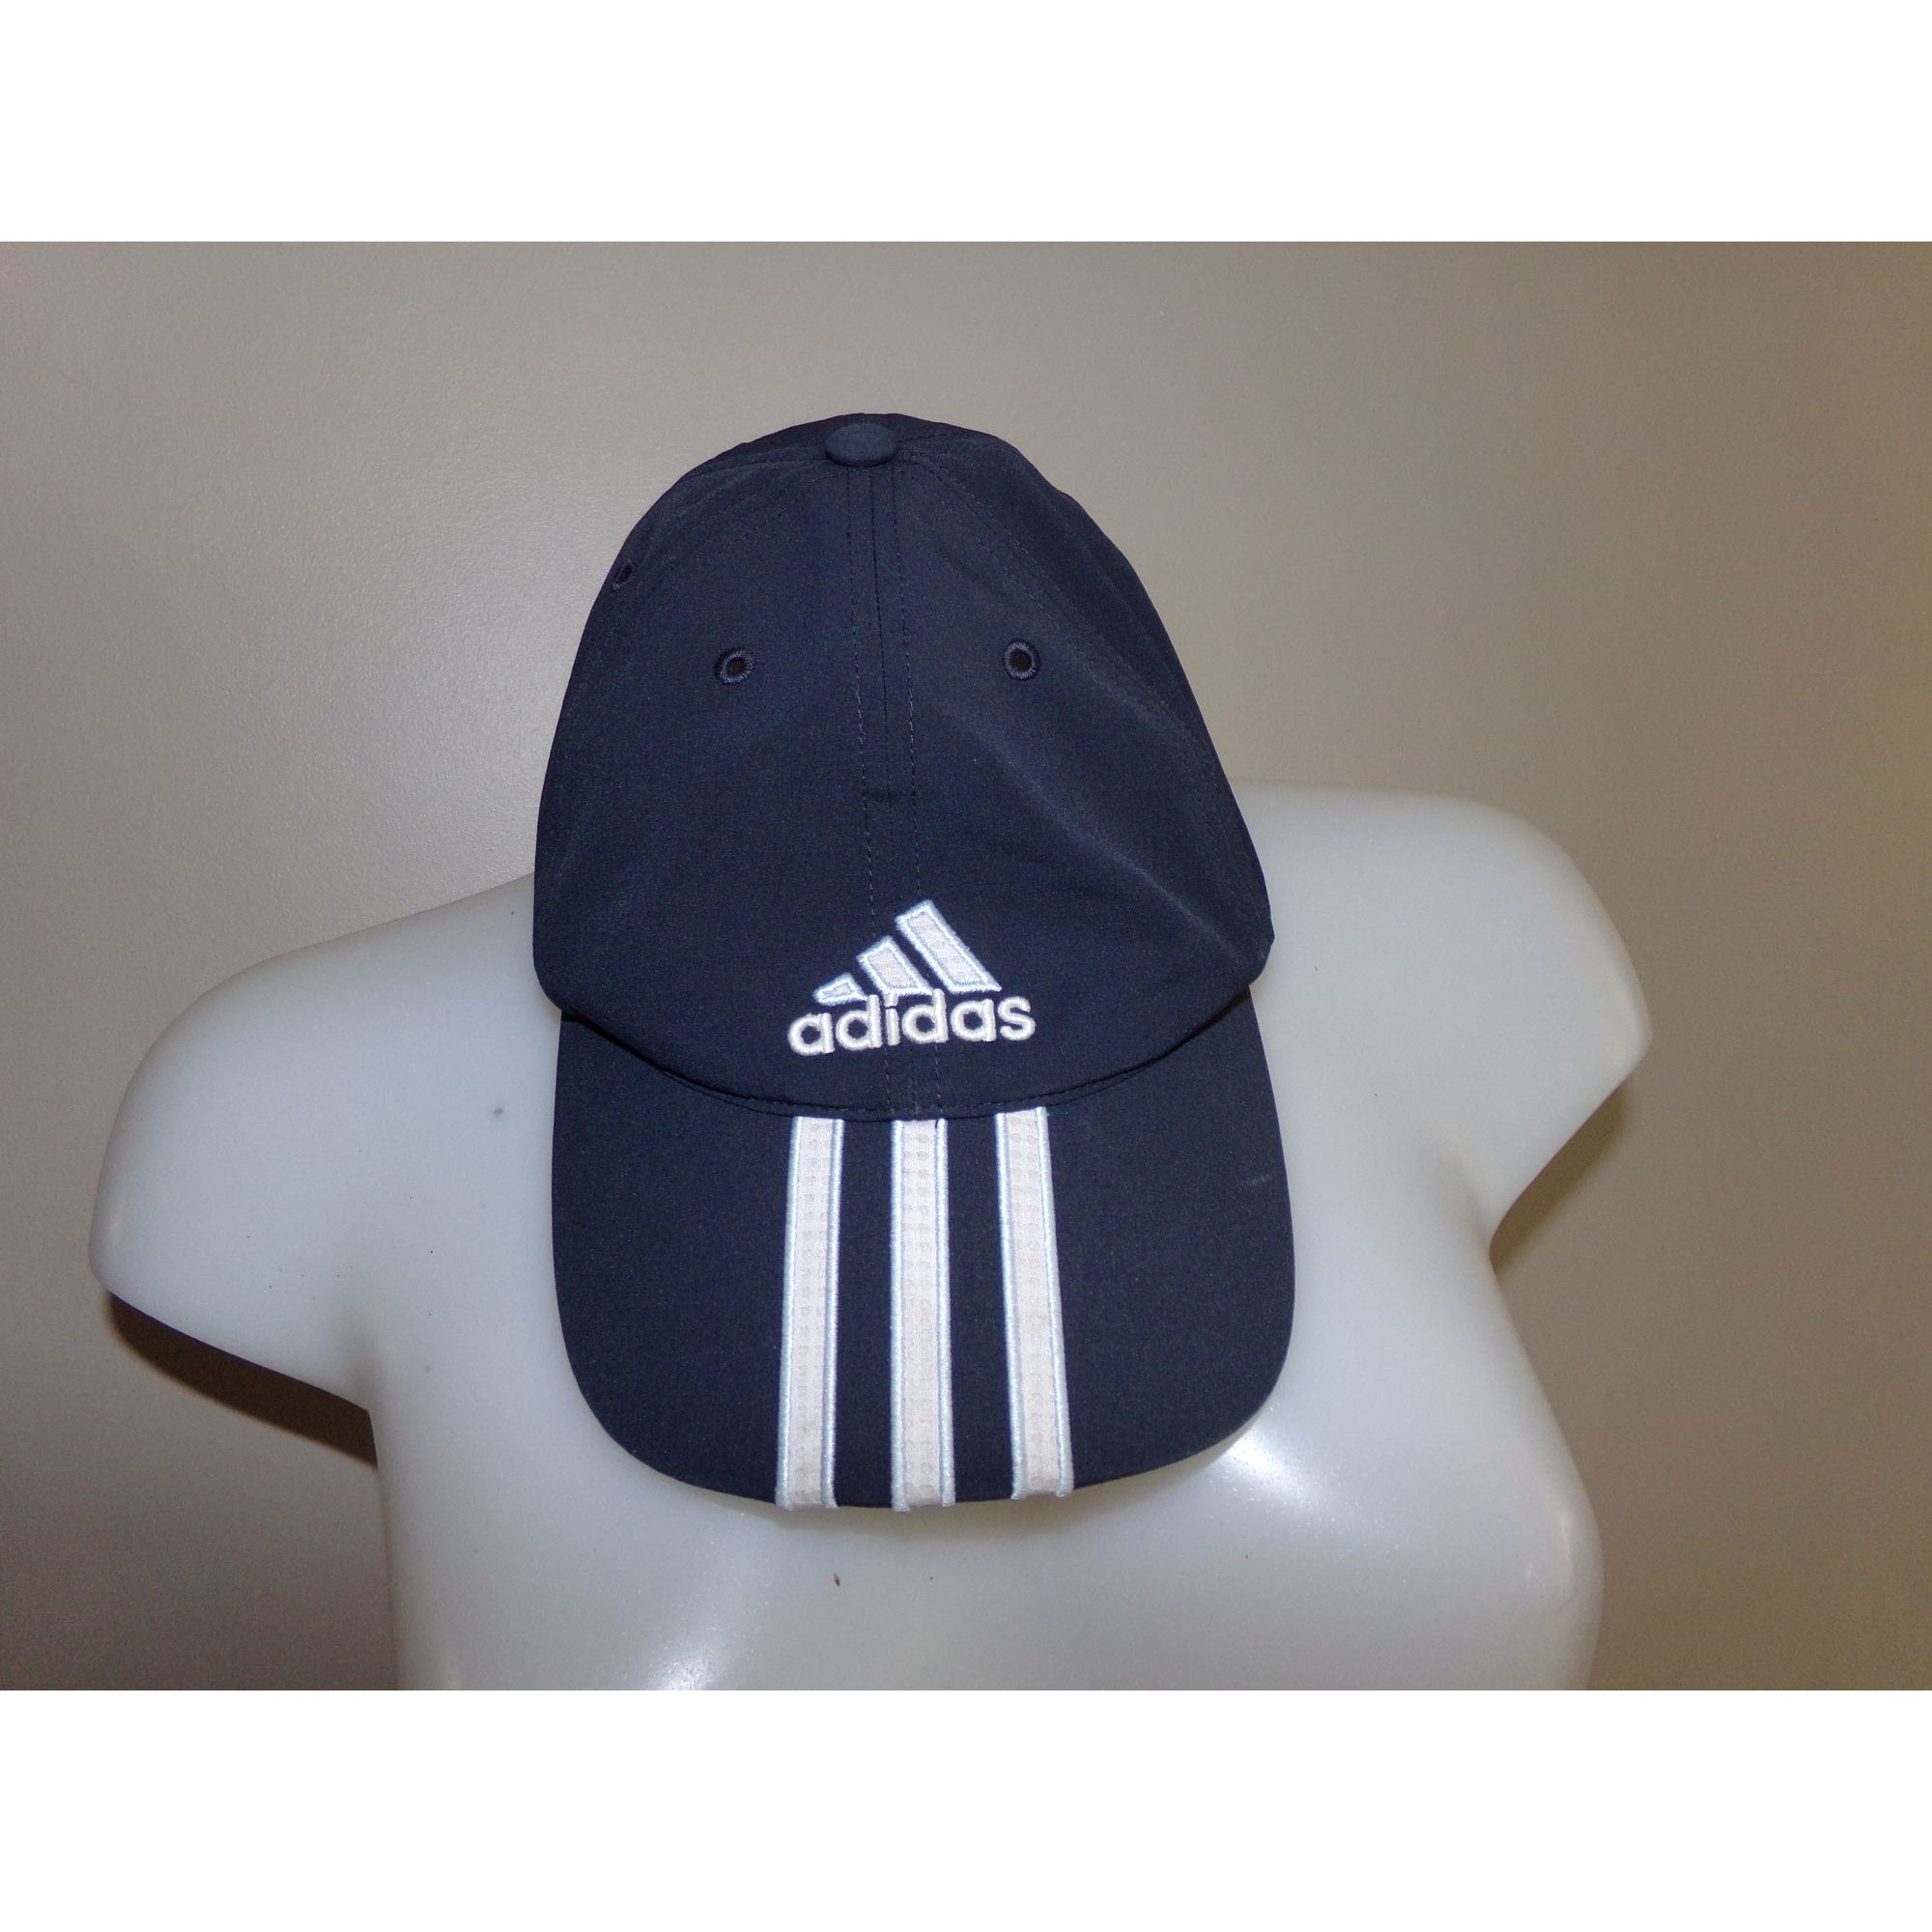 shades of low cost reliable quality Noir Jaune Climalite Jaune Adidas Adidas Casquette Noir ...